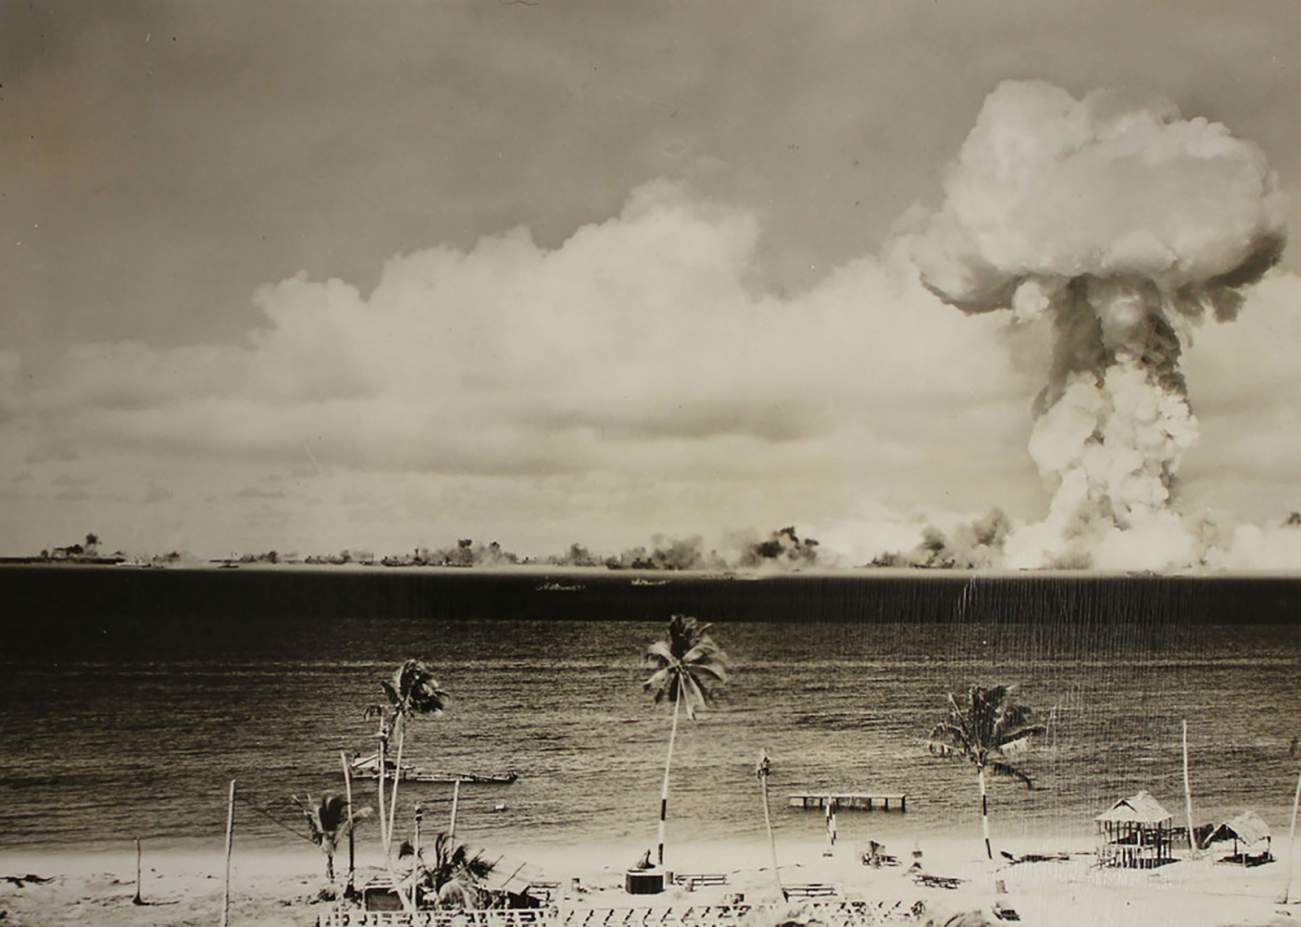 America Nuked Japan To End World War II In The Pacific—But Did It Need To?